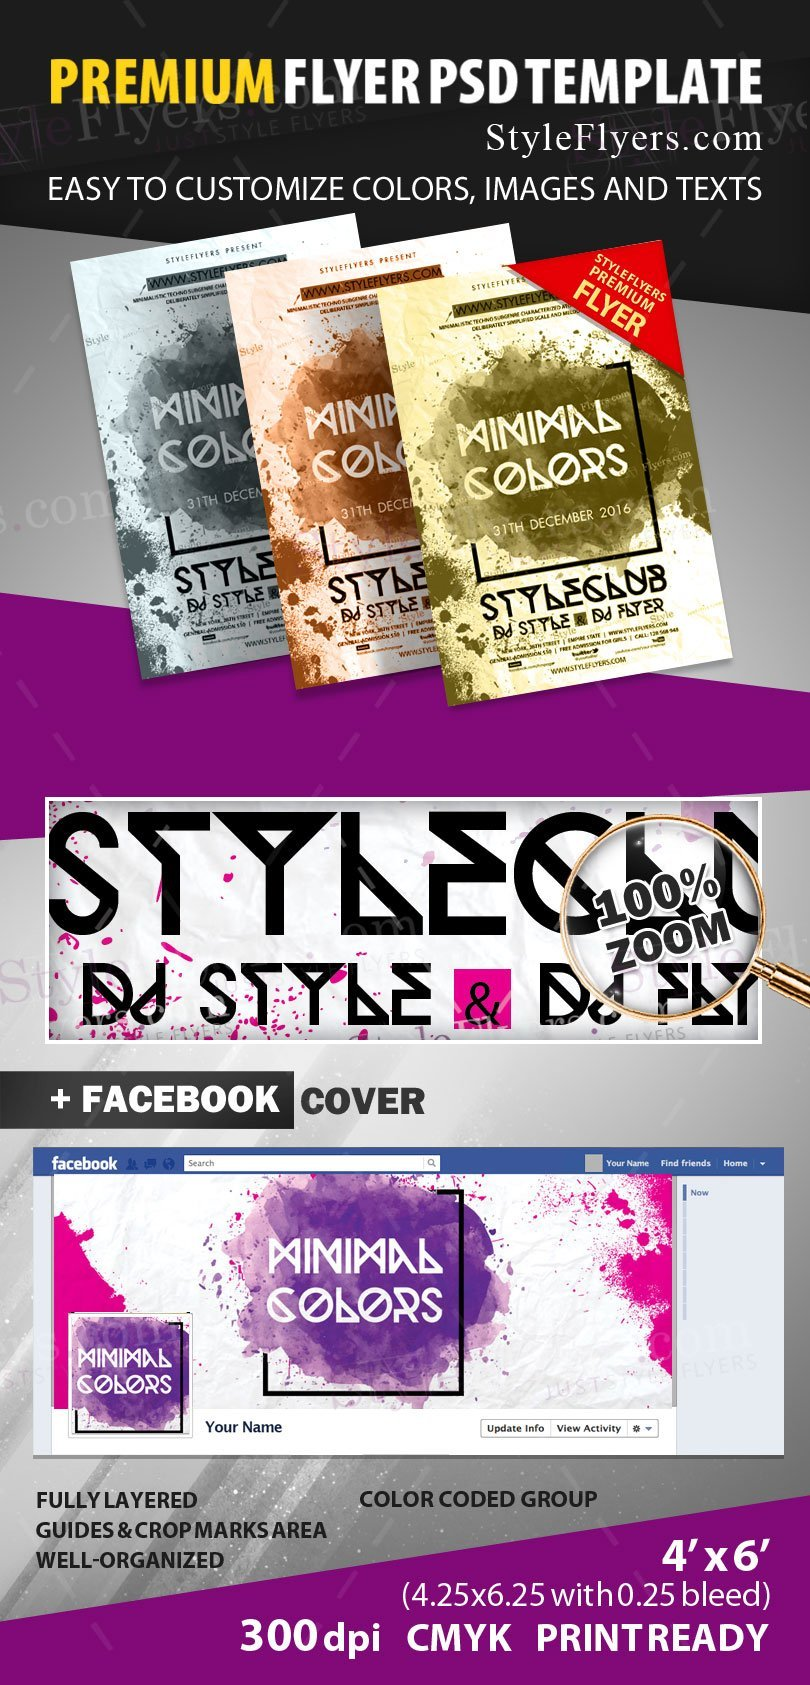 minimal-colors-flyer-psd-preview_premium